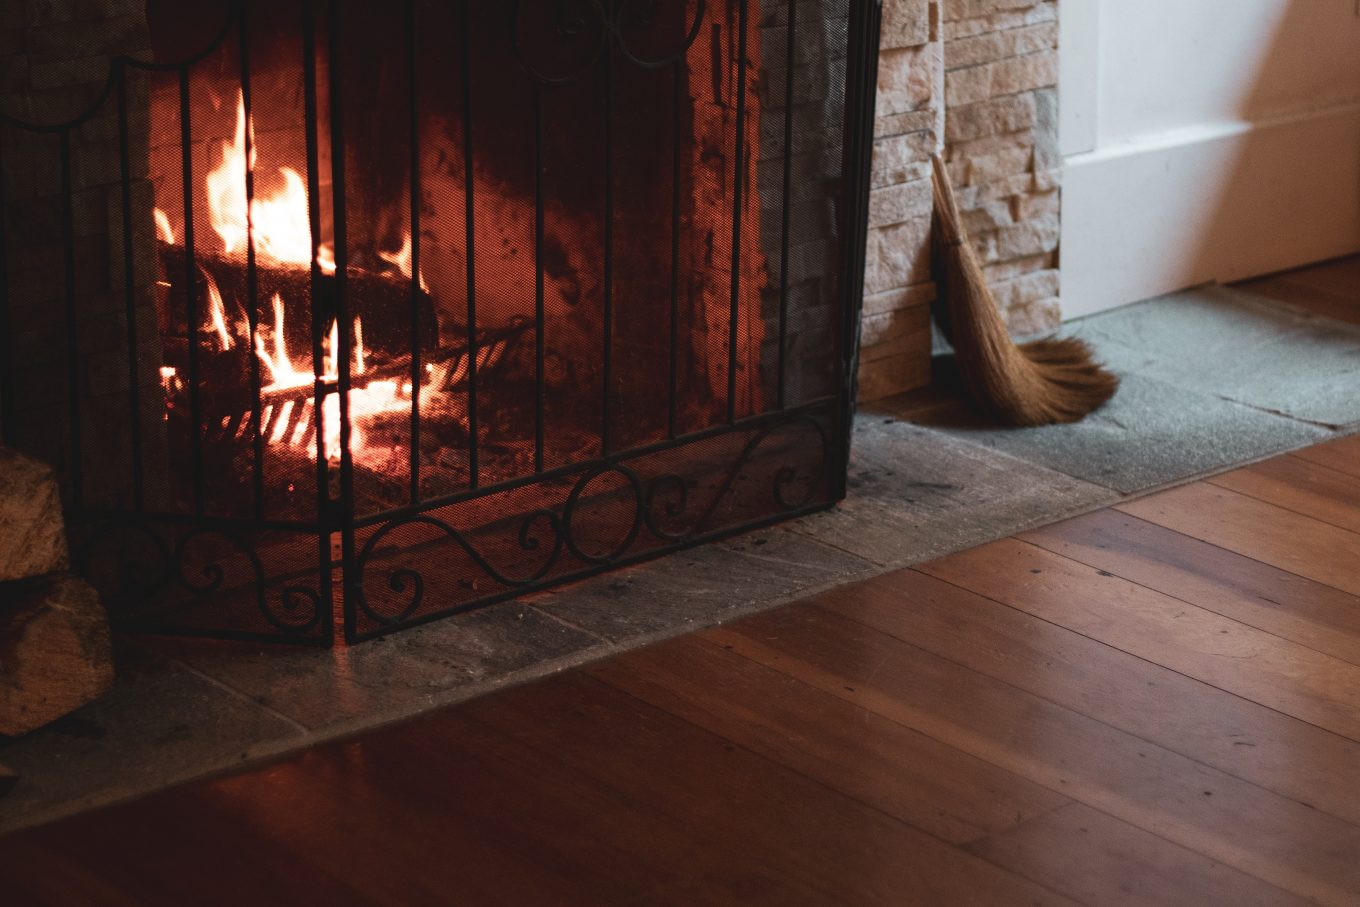 fireplace on fire